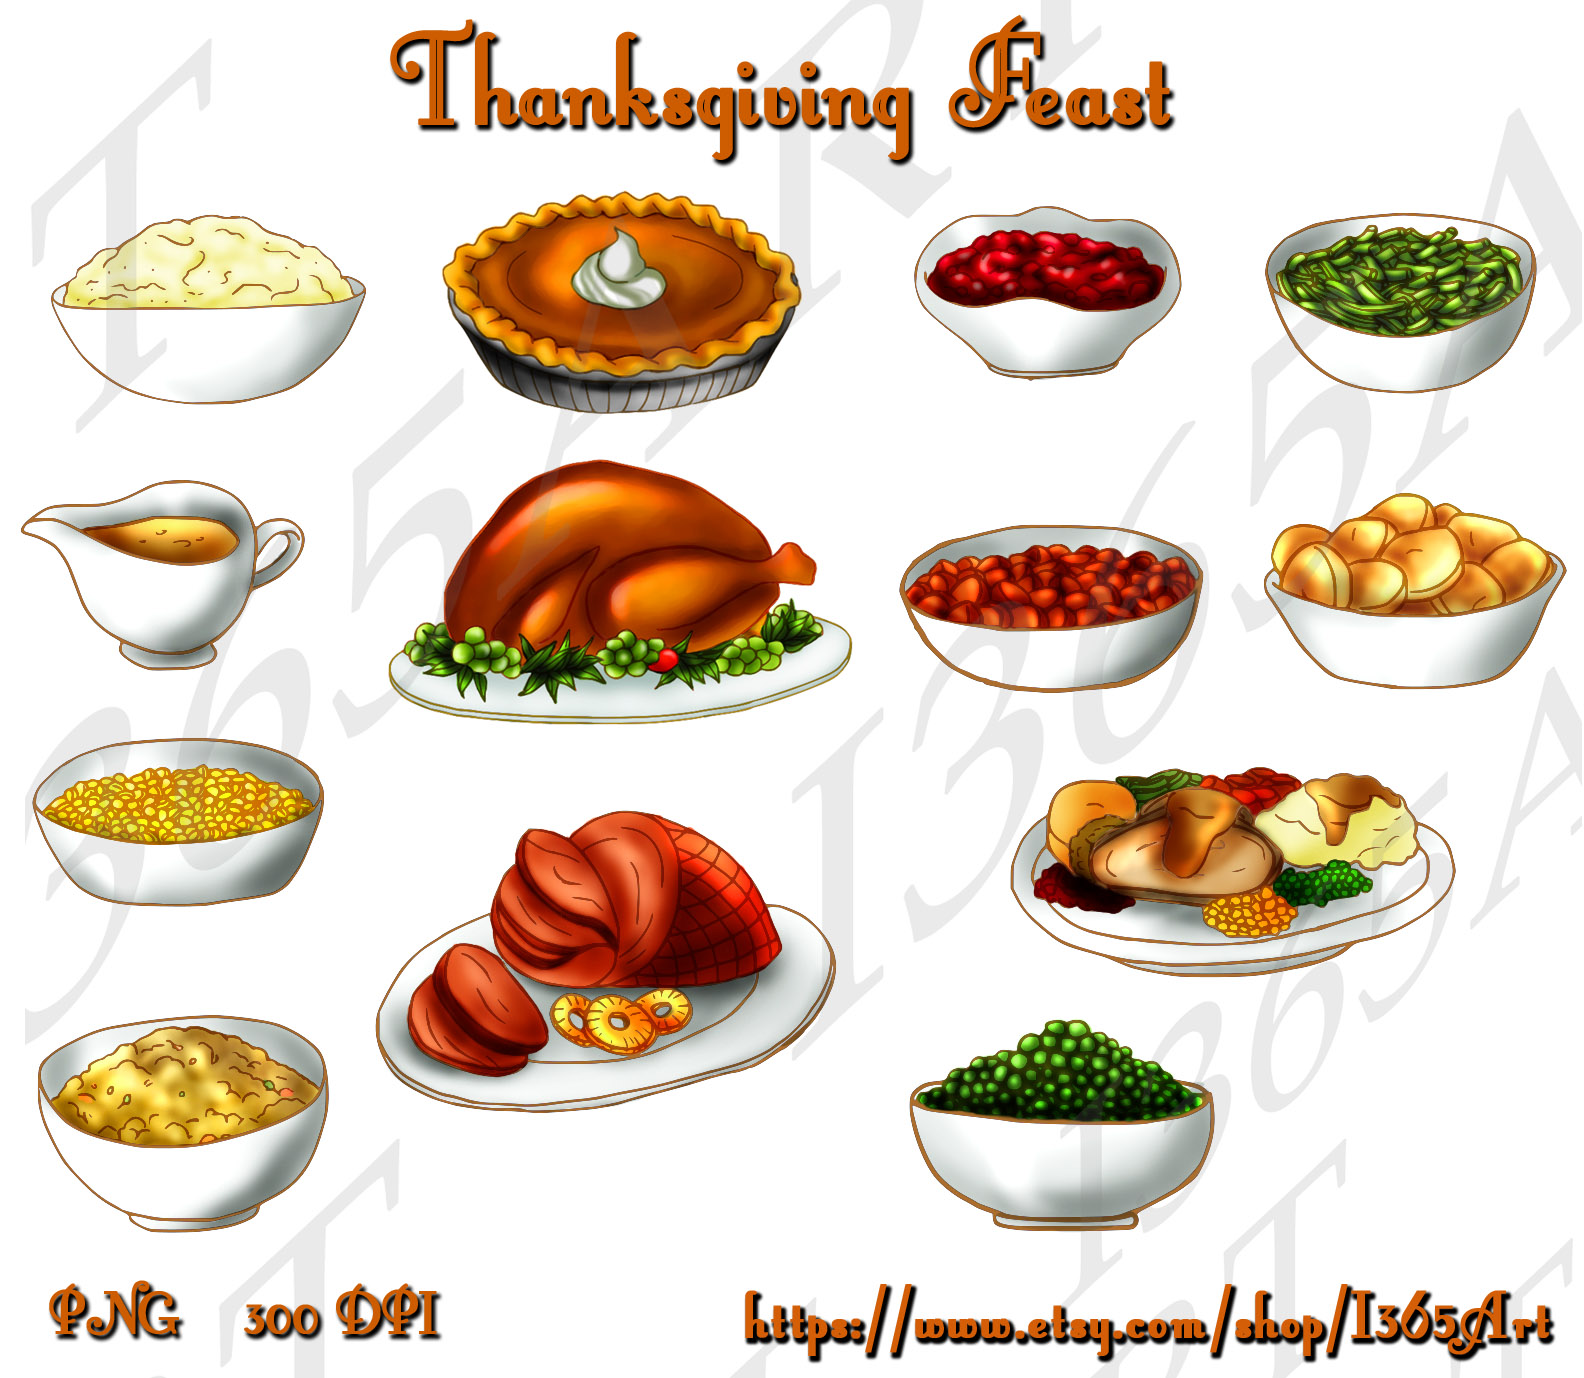 Thankgiving dinner clipart clipart graphic library download Thanksgiving Food Clipart - Clipart Kid graphic library download